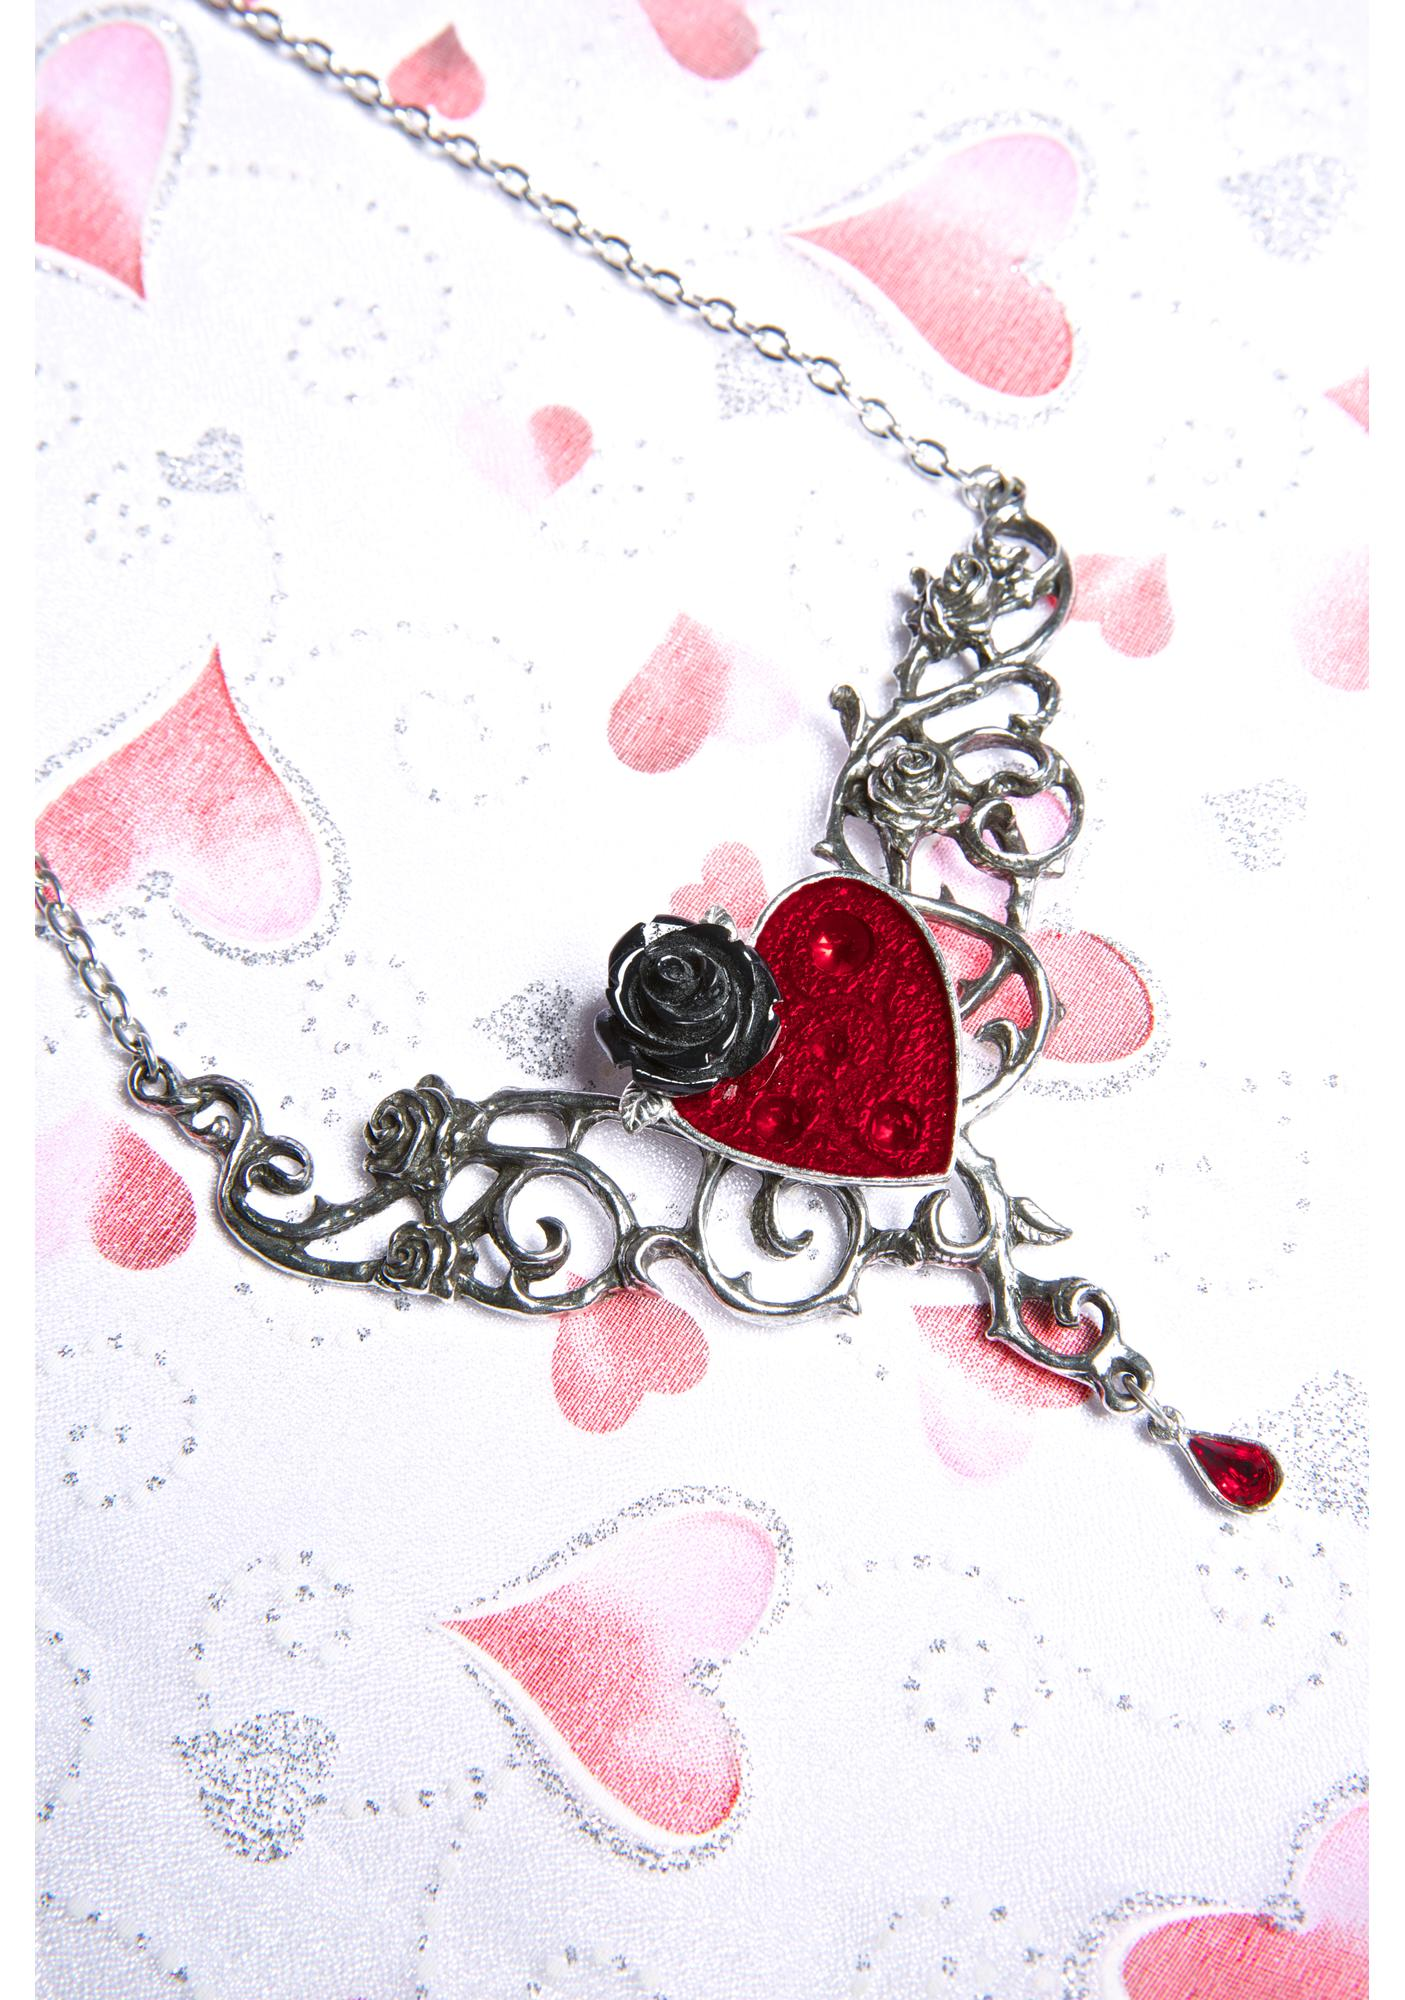 The Blood Rose Heart Necklace